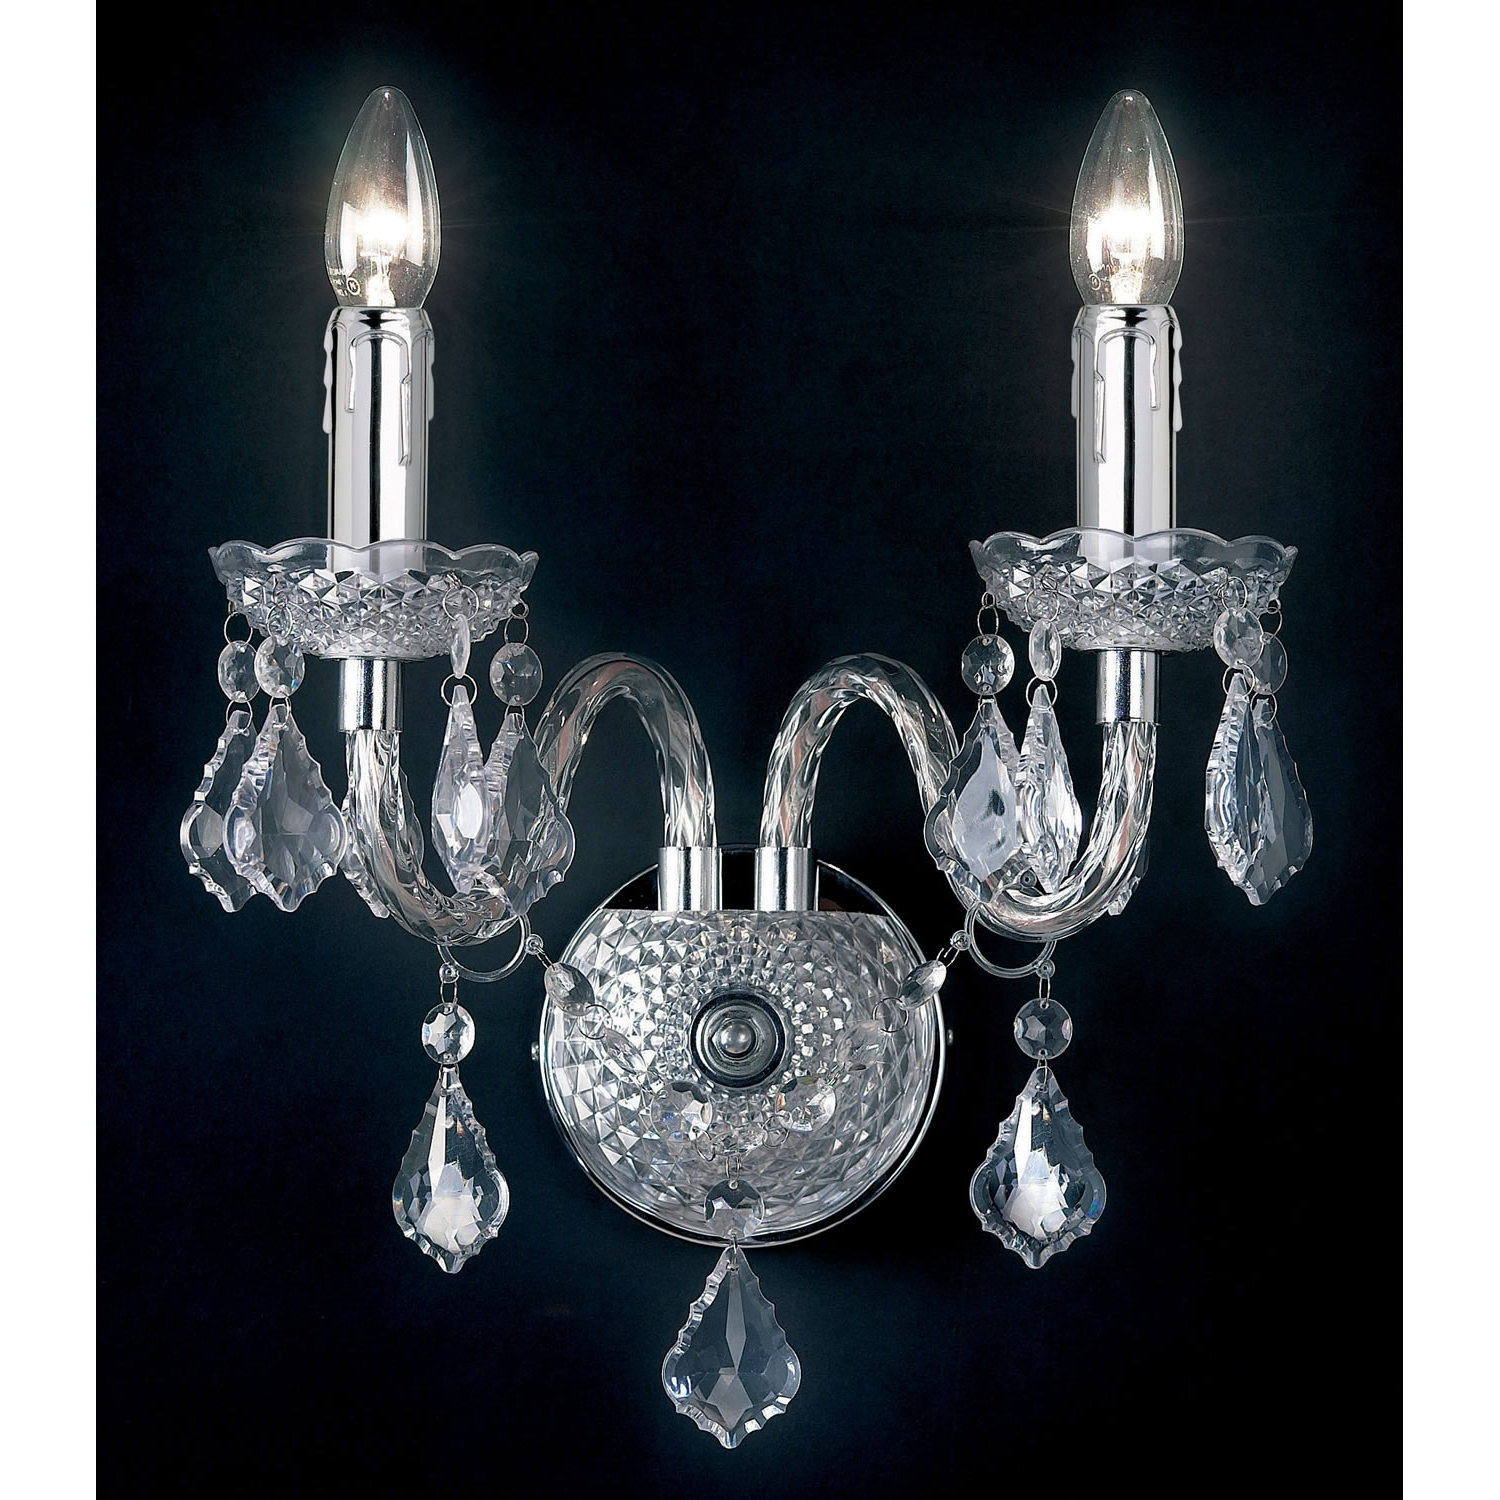 Endon Lighting 2 Light Wall Chandelier In Clear E2 80 93 Next Day Intended For 2018 Endon Lighting Chandeliers (View 6 of 20)